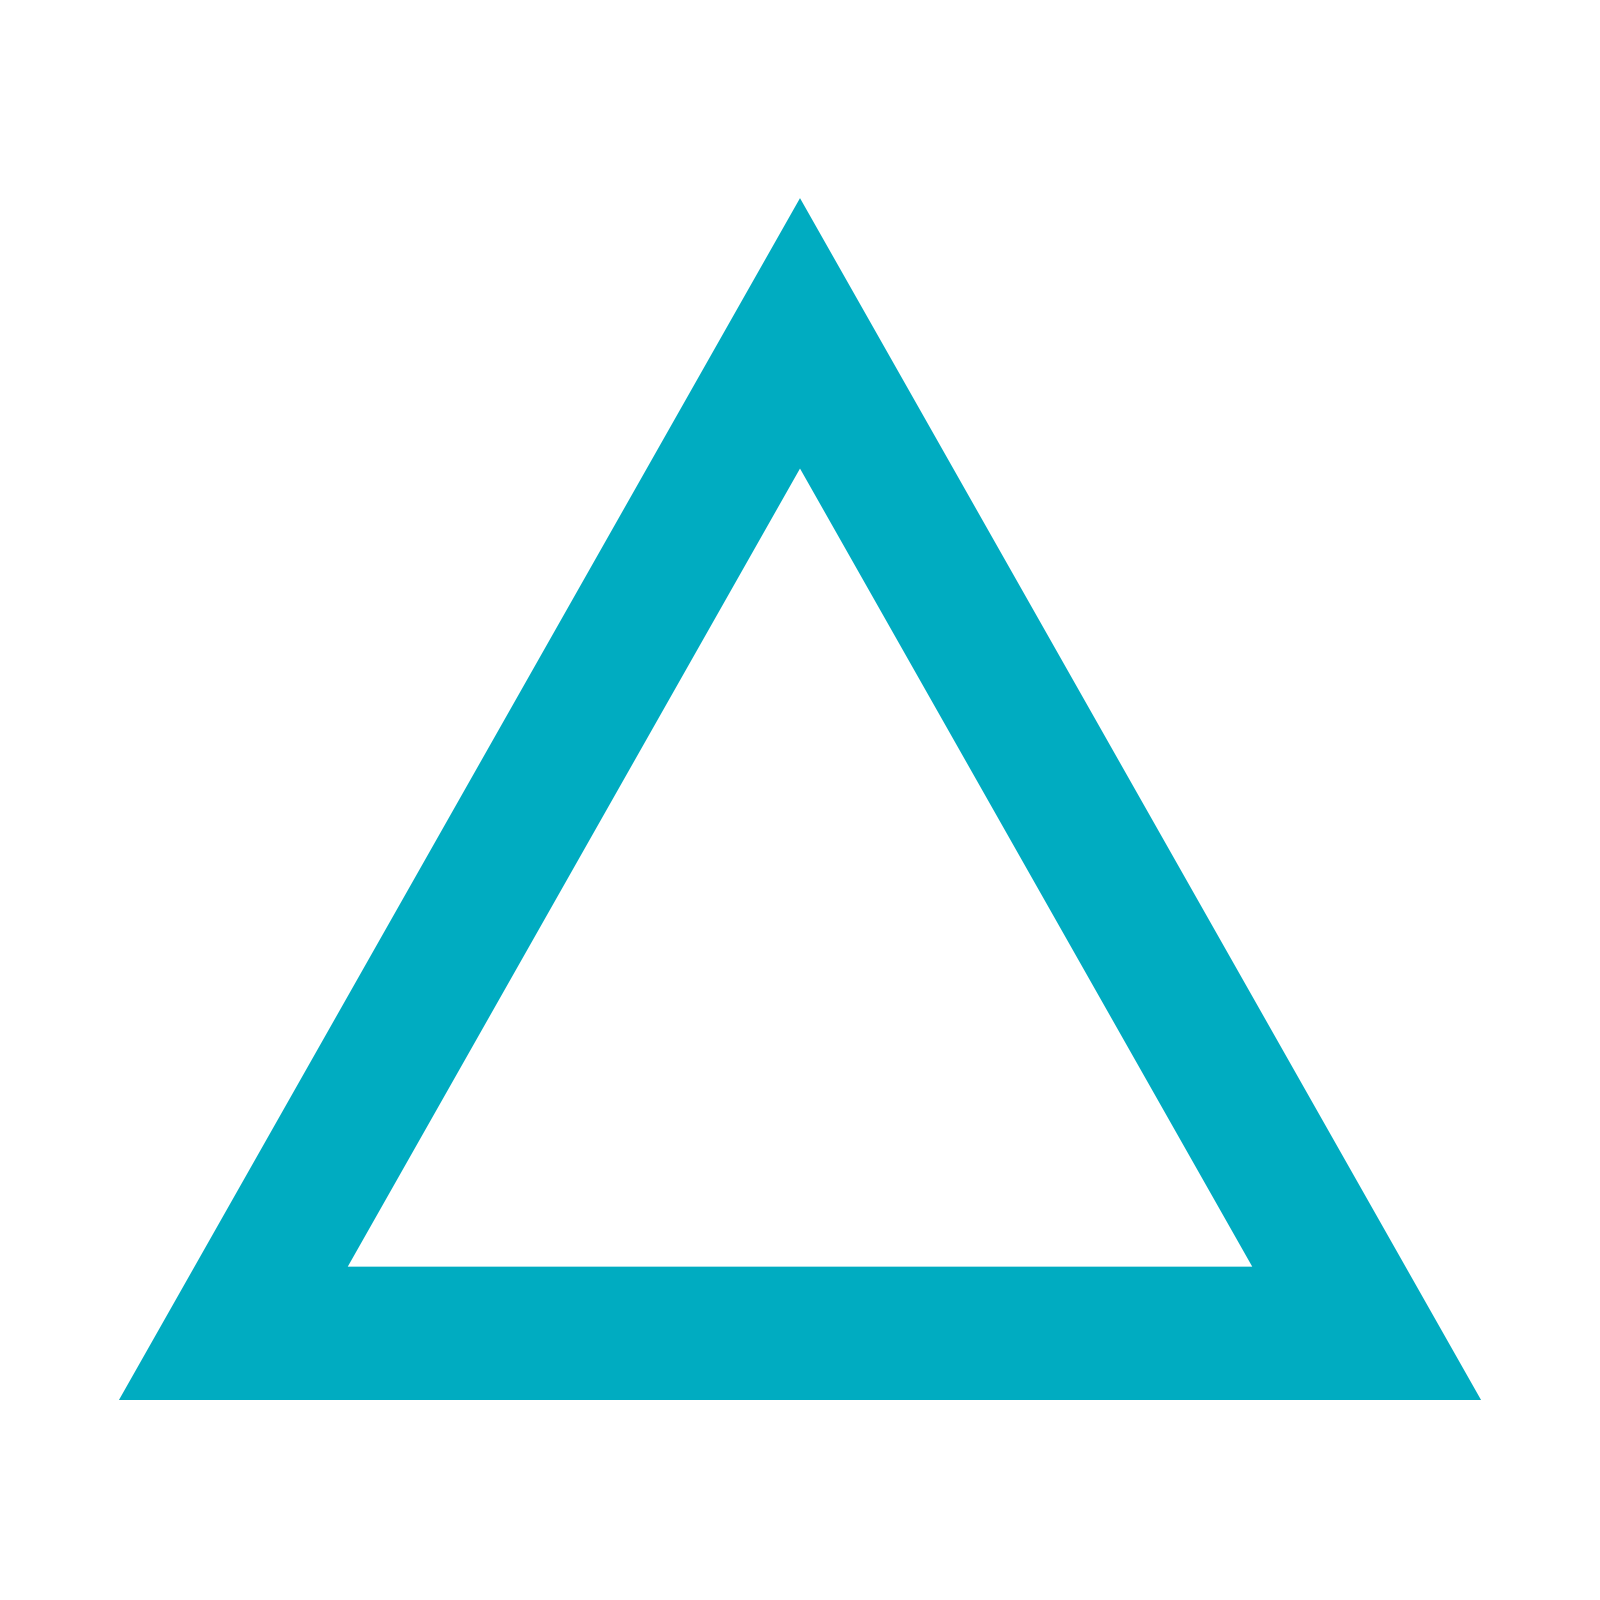 Blue triangle png. Transparent images pluspng icon